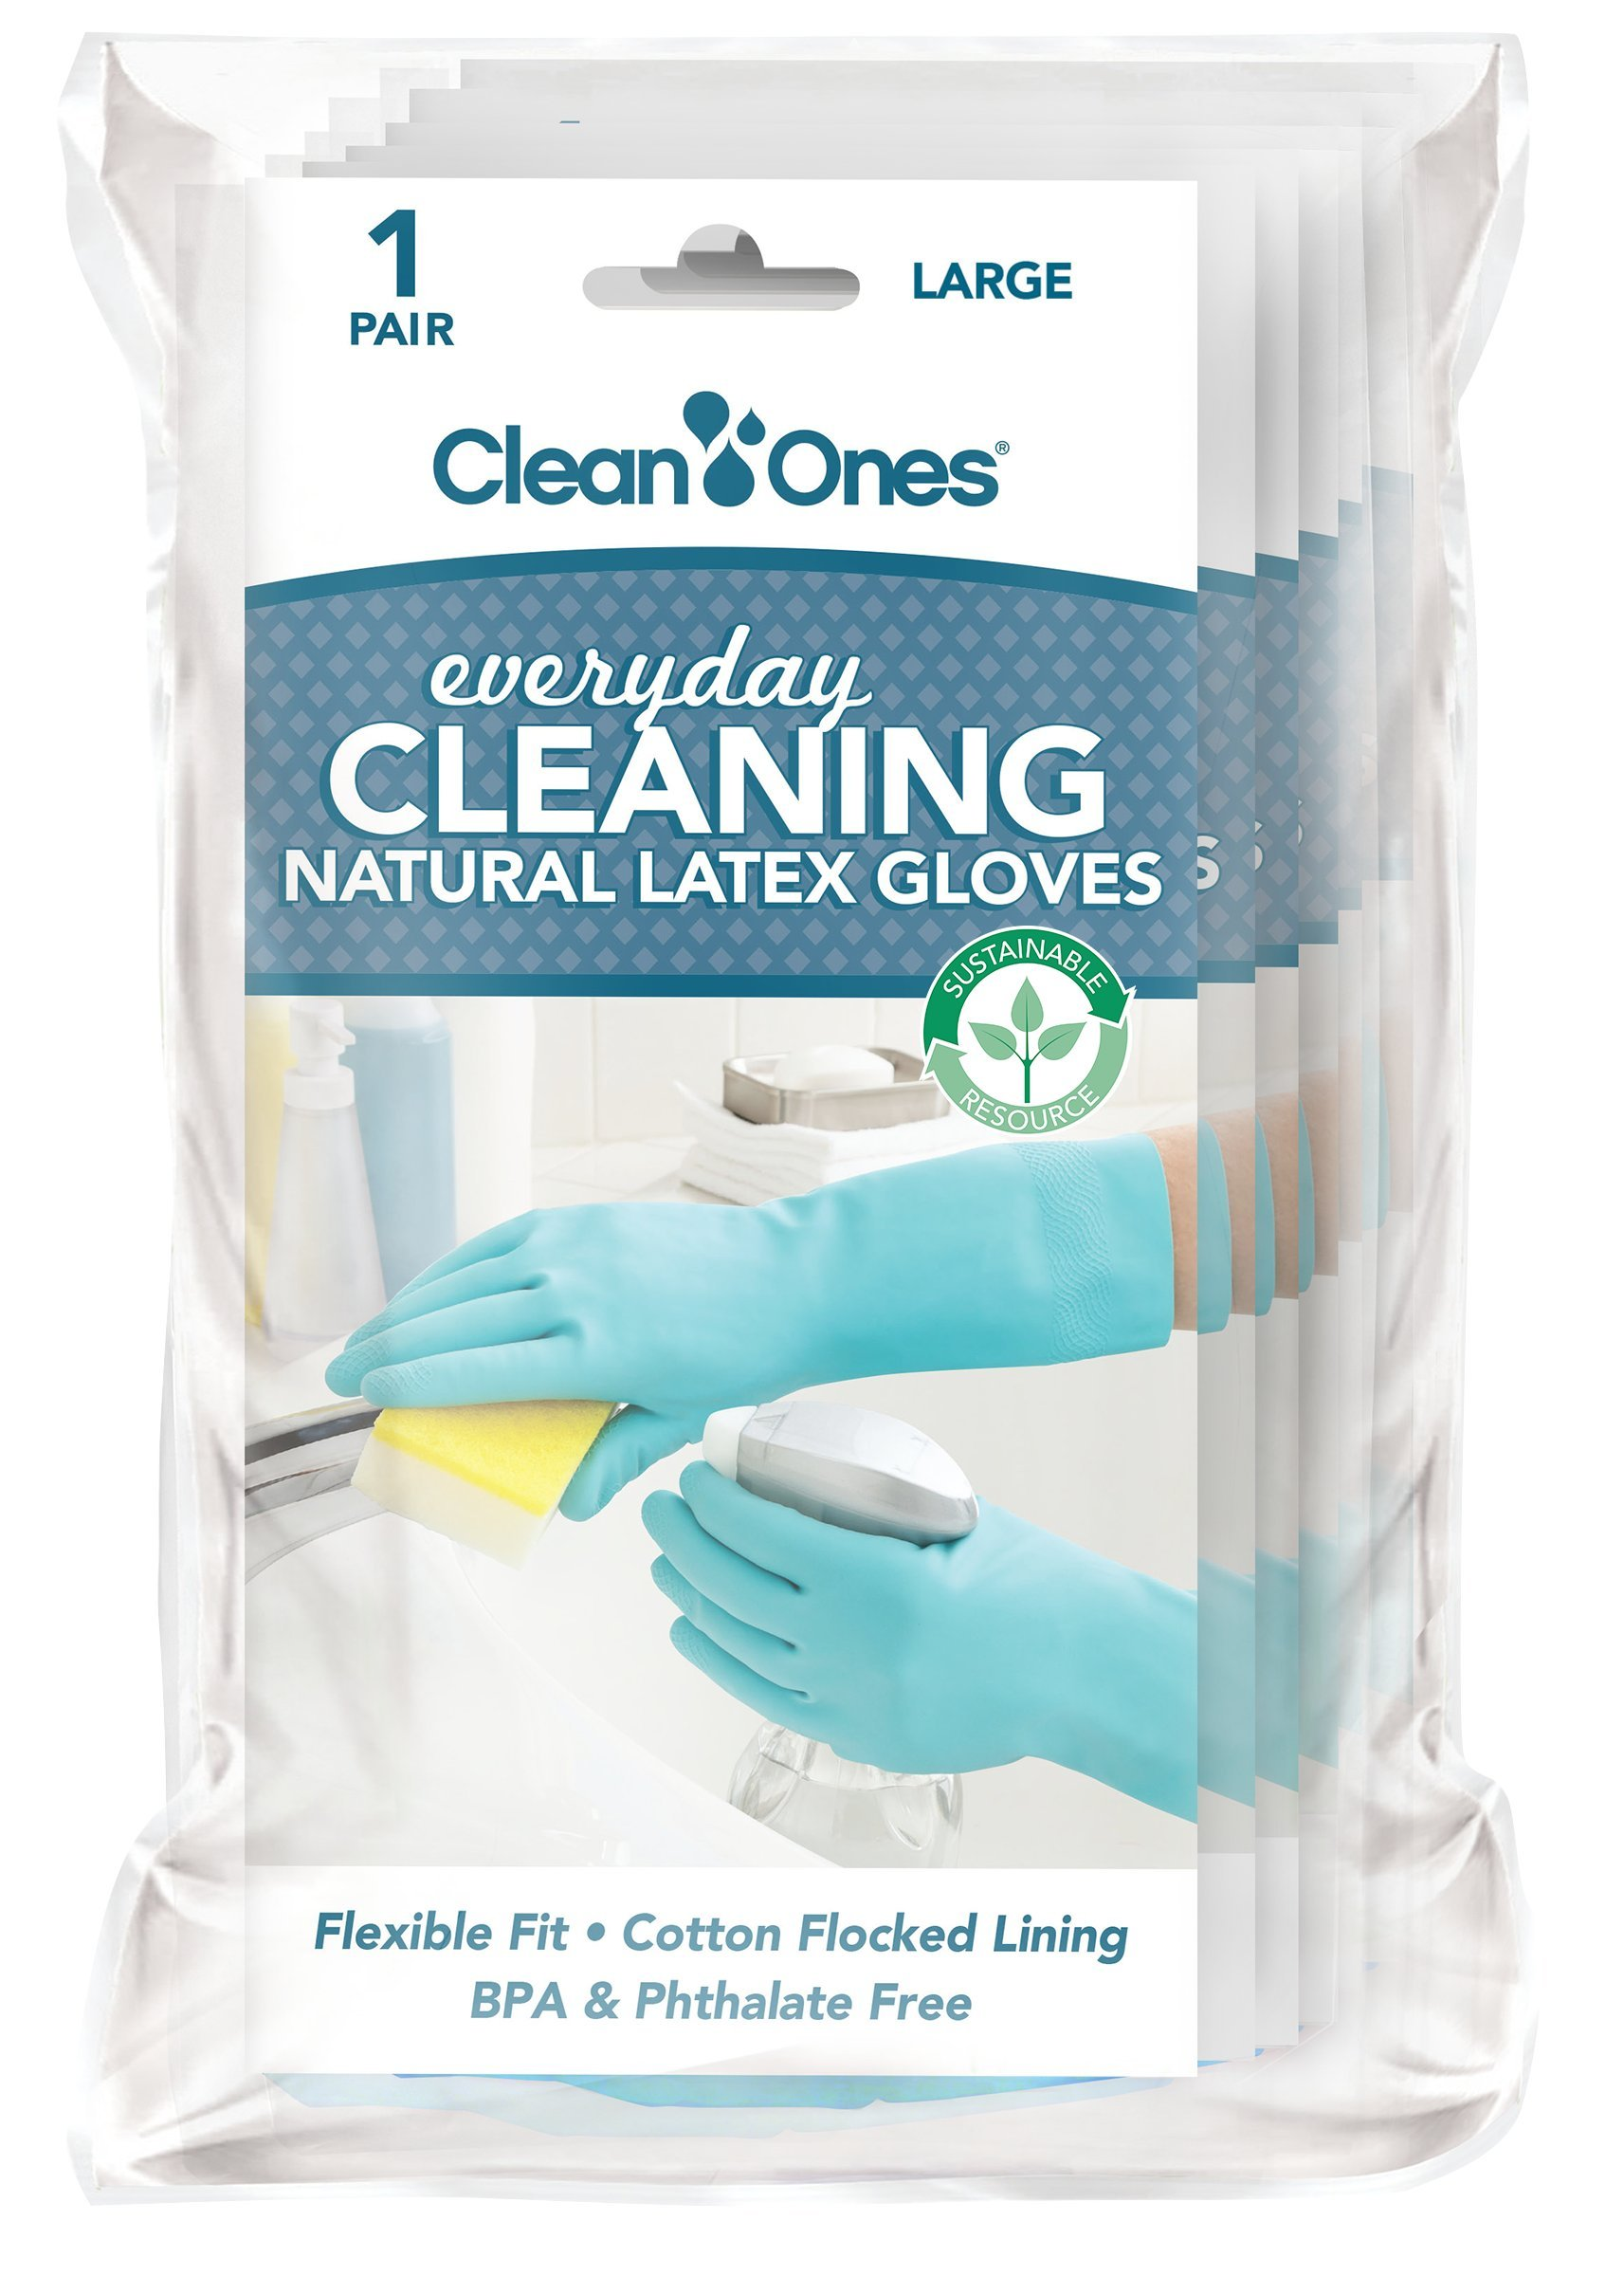 Clean Ones Everyday Cleaning Latex Gloves - 6 Pair (Large) by Clean Ones